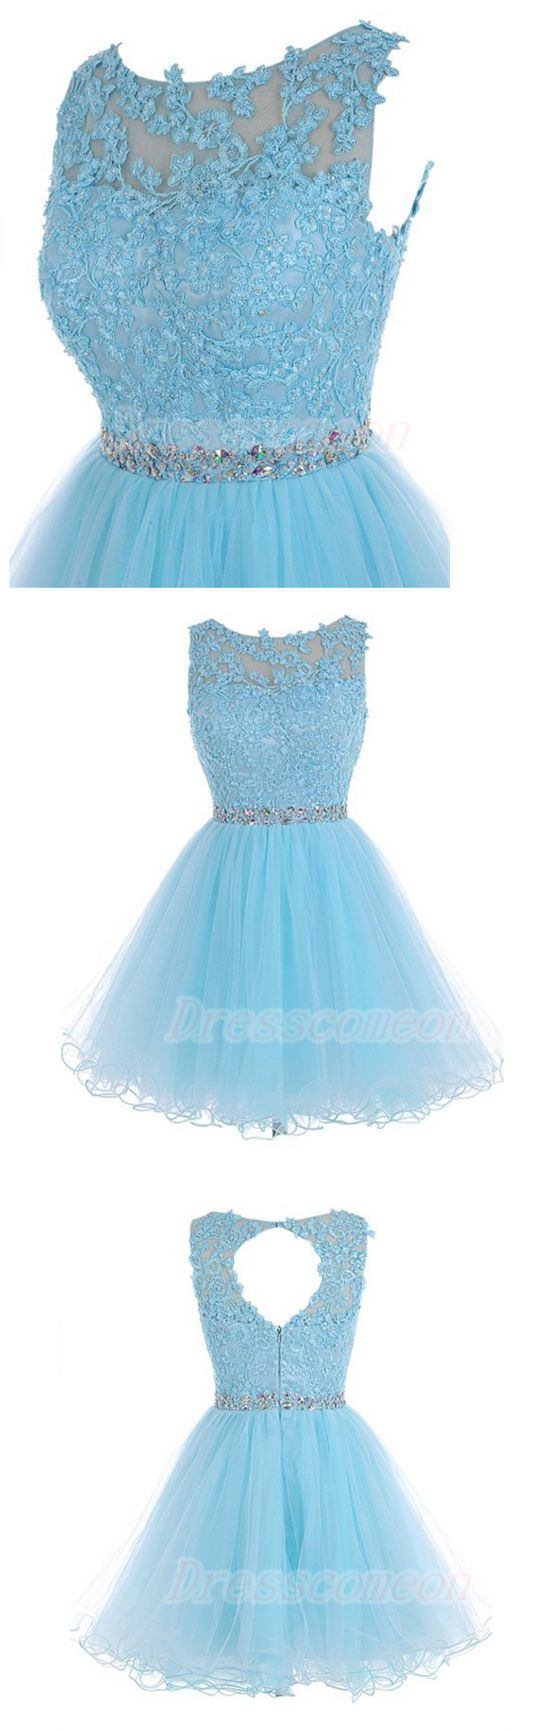 Lace Homecoming Dress,Open Back Homecoming Dress,Cute Dress,Short Homecoming Dress,Light Blue Homecoming Dress,Simple Cheap Homecoming Dress,Pretty Homecoming Dress For Teens,Party Dress,Cocktail Dresses